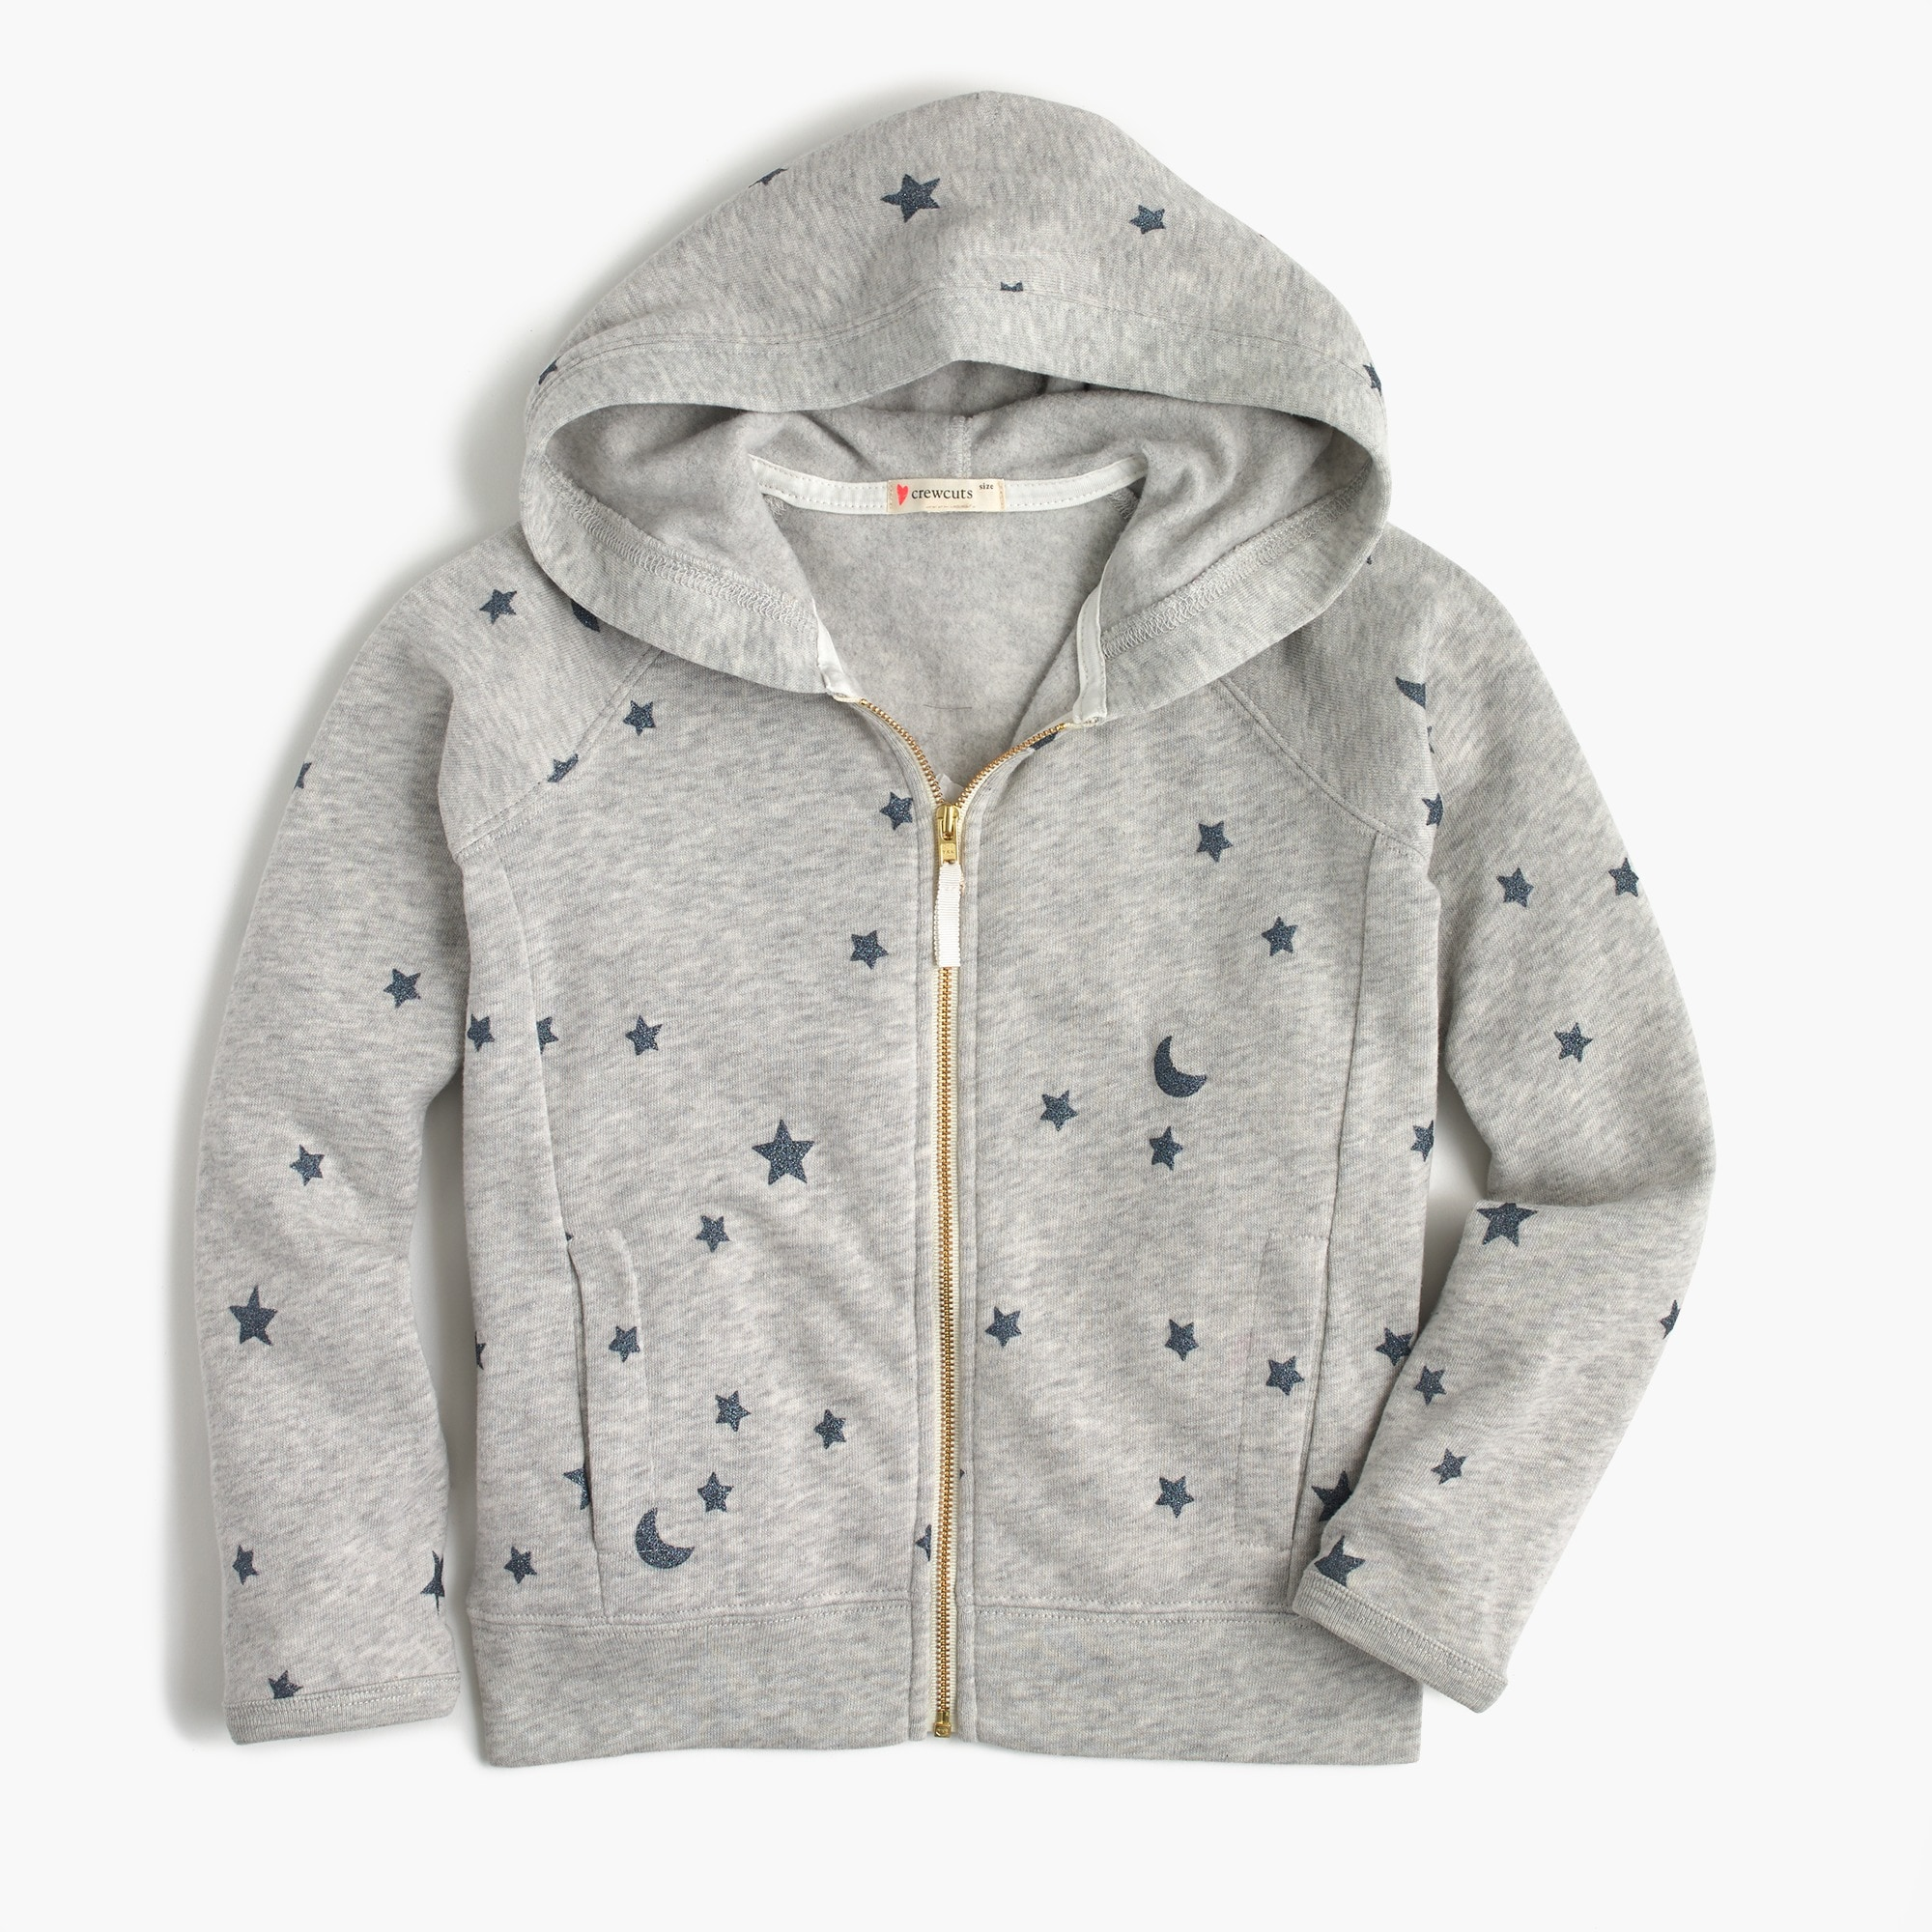 Image 1 for Girls' full-zip hoodie in stars